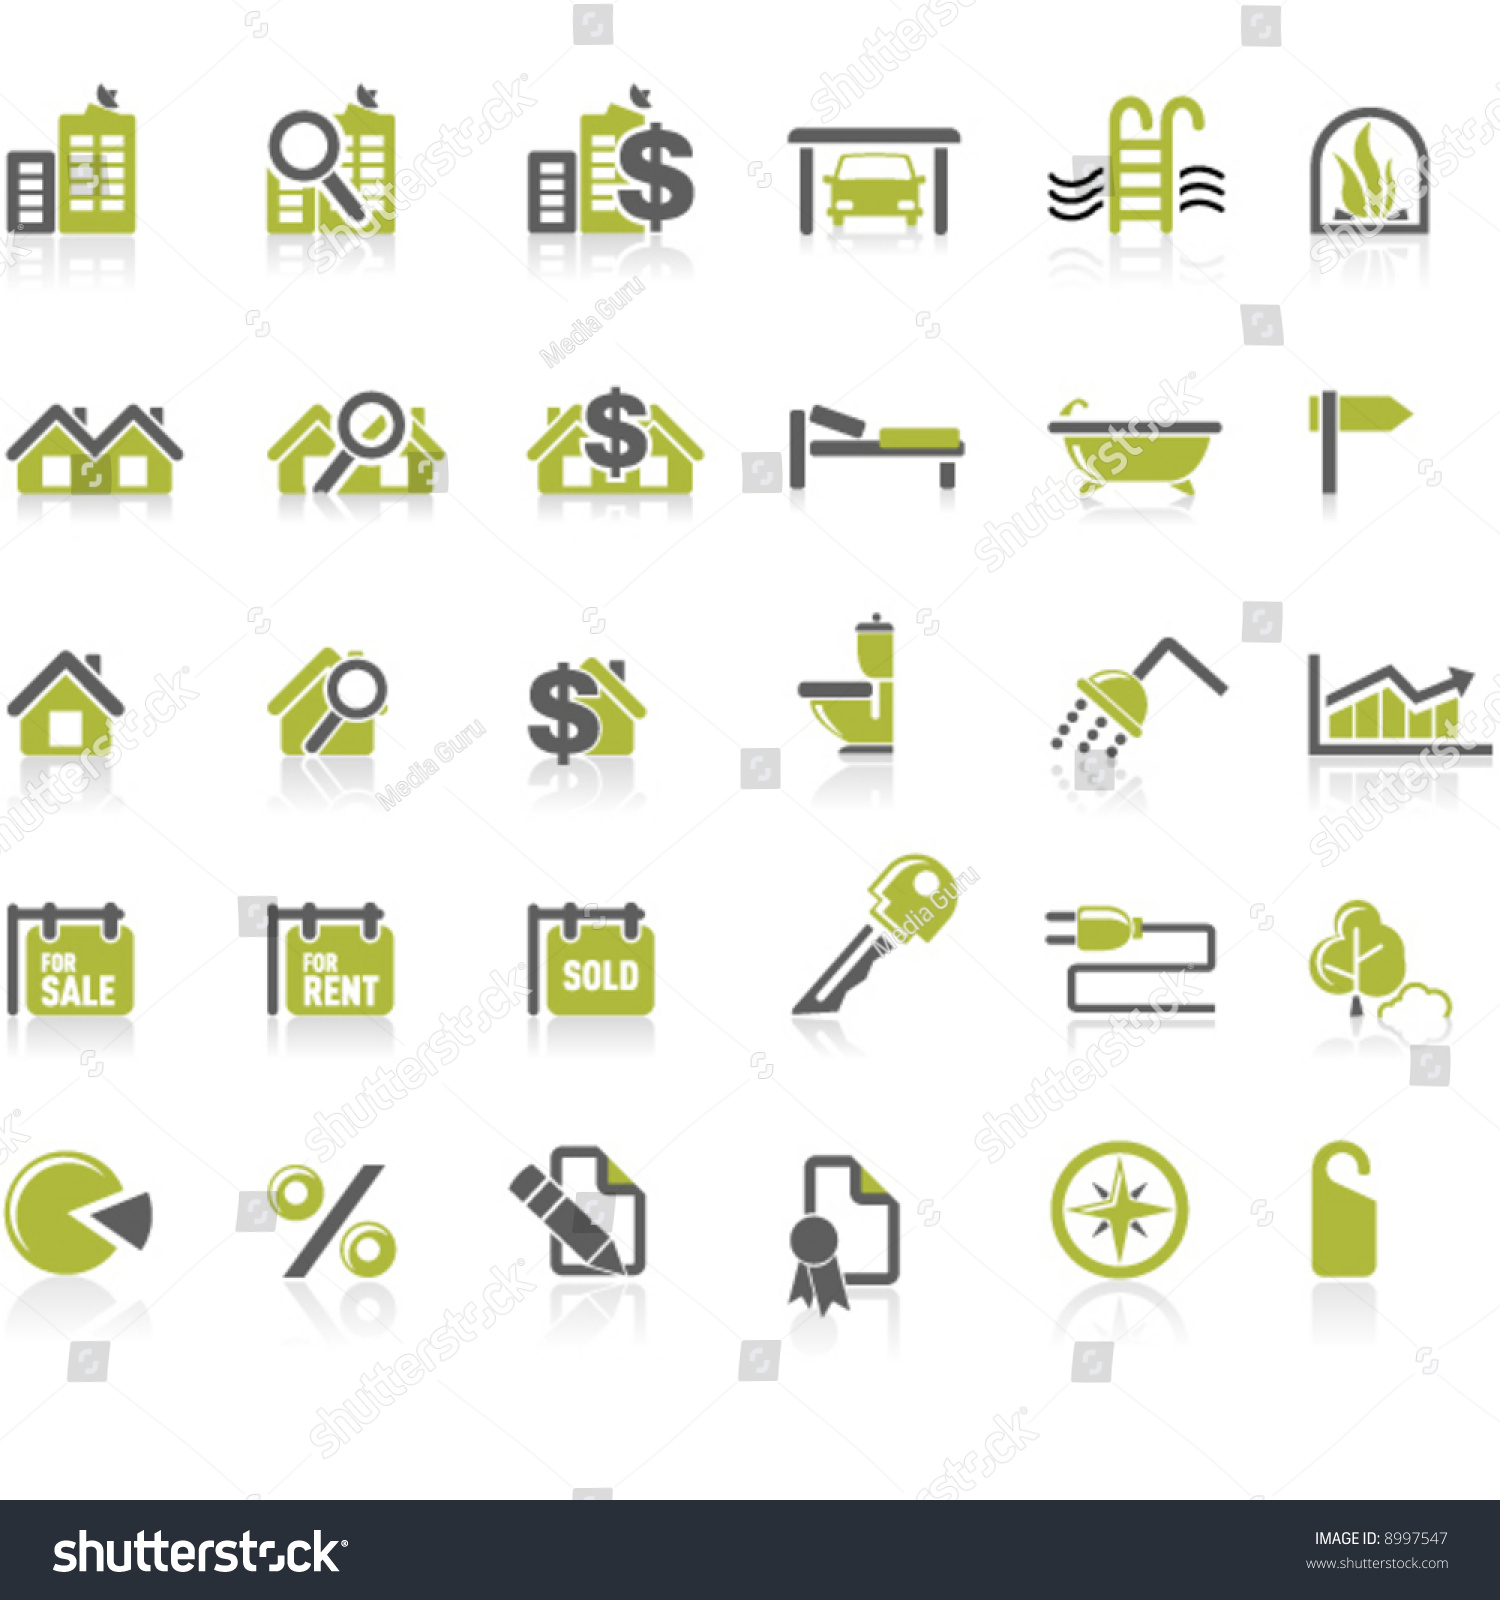 real estate icon set stock vector illustration 8997547